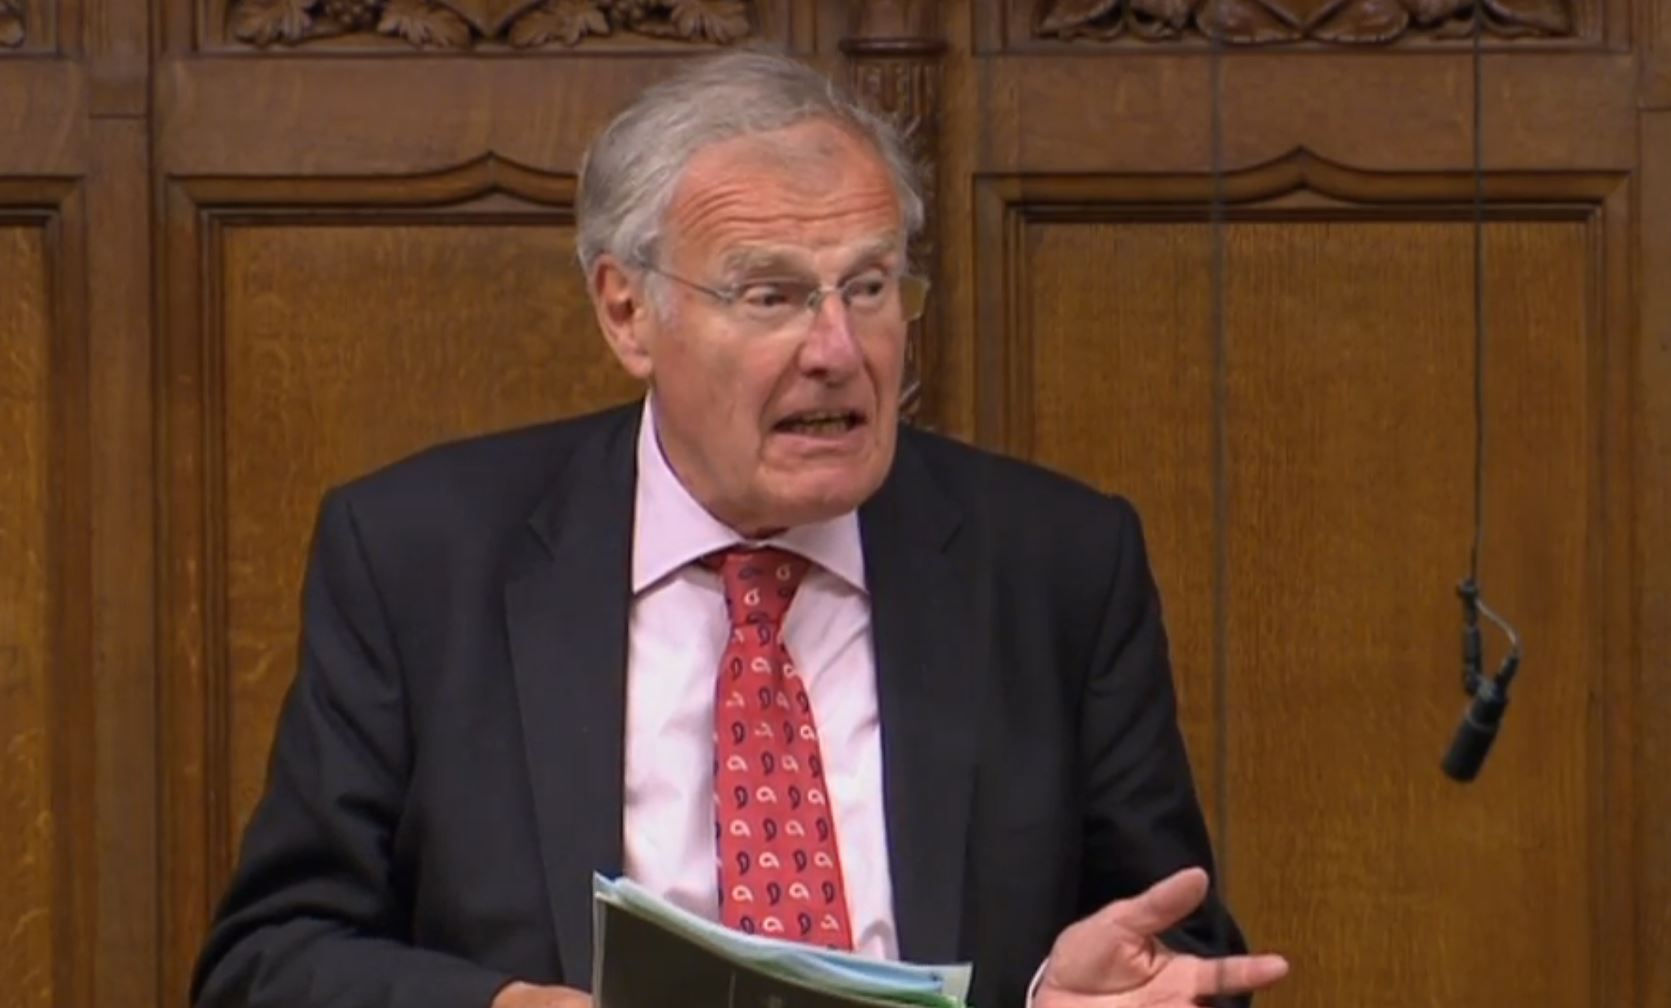 HOT WATER: Sir Christopher Chope